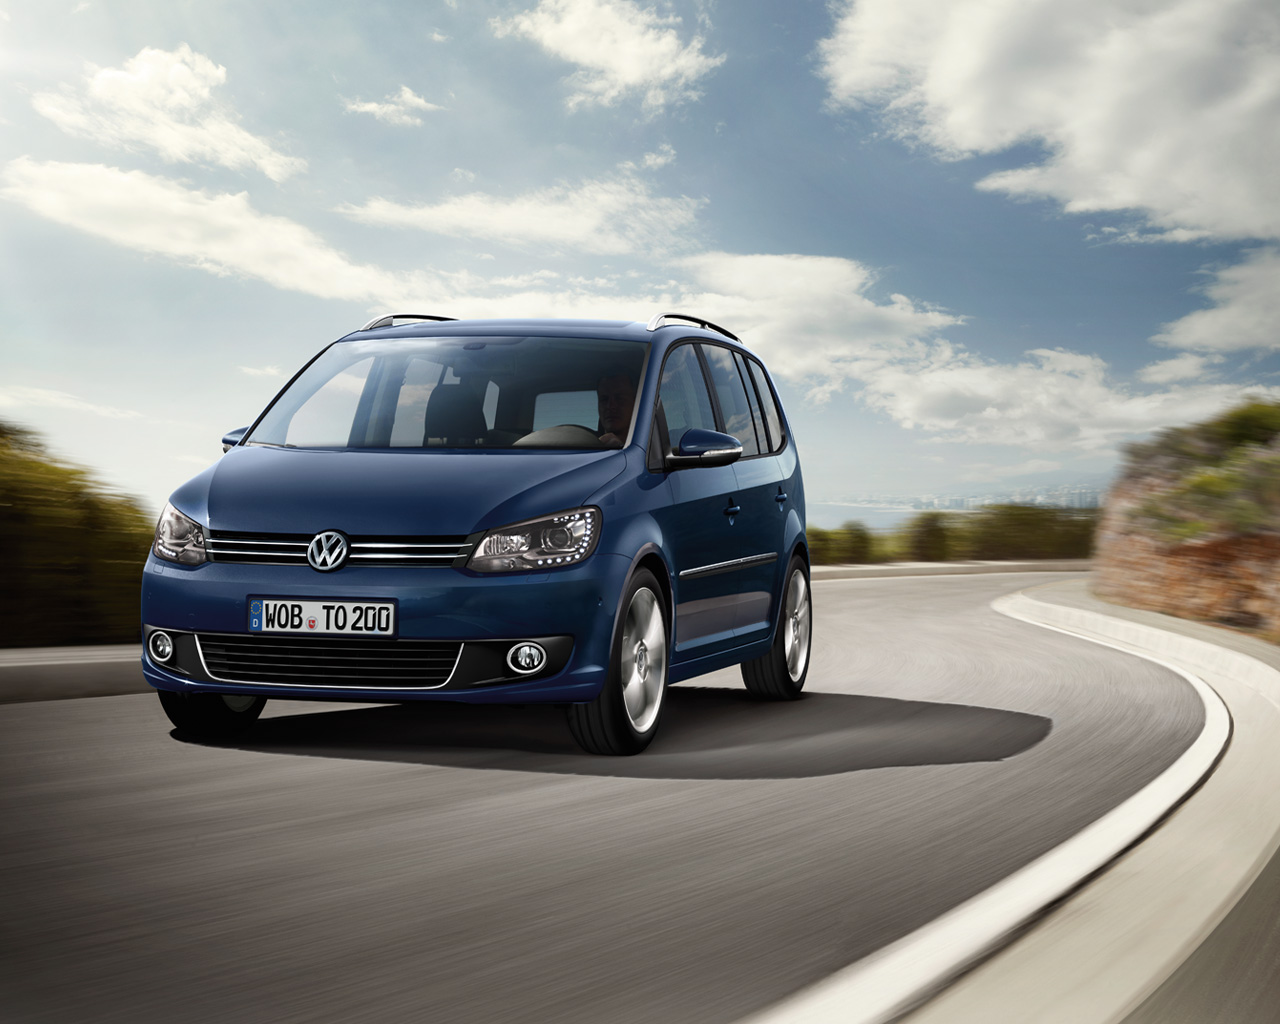 volkswagen wallpaper (Volkswagen Touran)